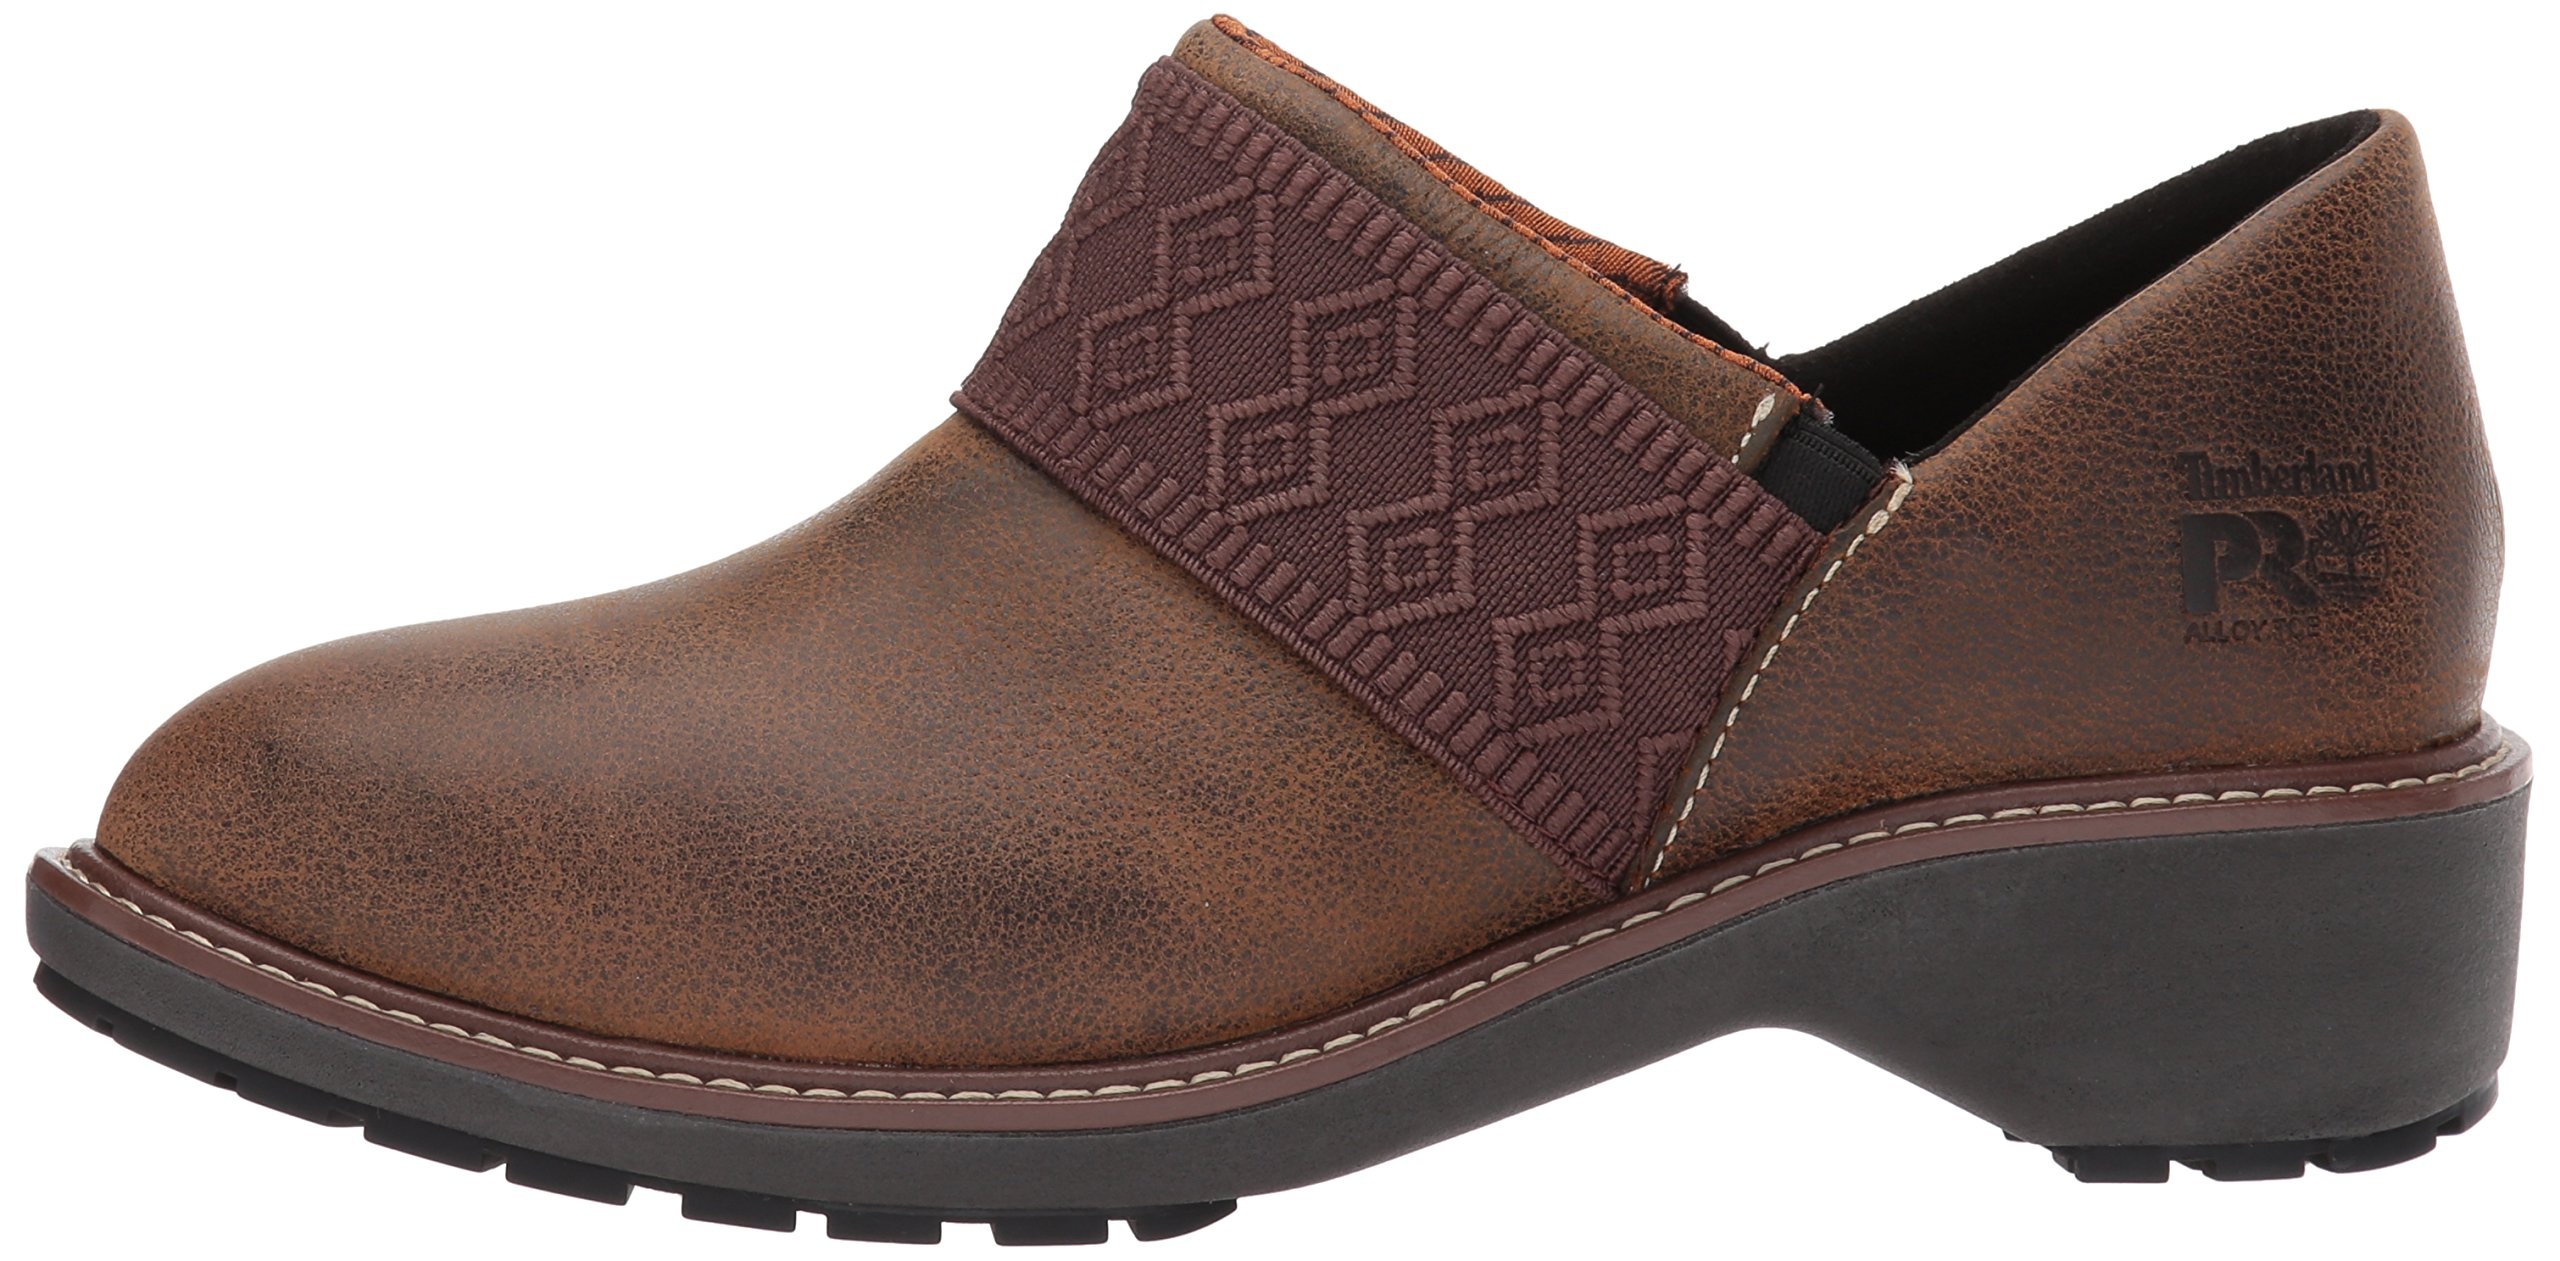 Timberland PRO Women's Riveter Alloy Toe SD+ Industrial and Construction Shoe, Dark Sudan Full Grain Leather, 7.5 M US by Timberland PRO (Image #5)